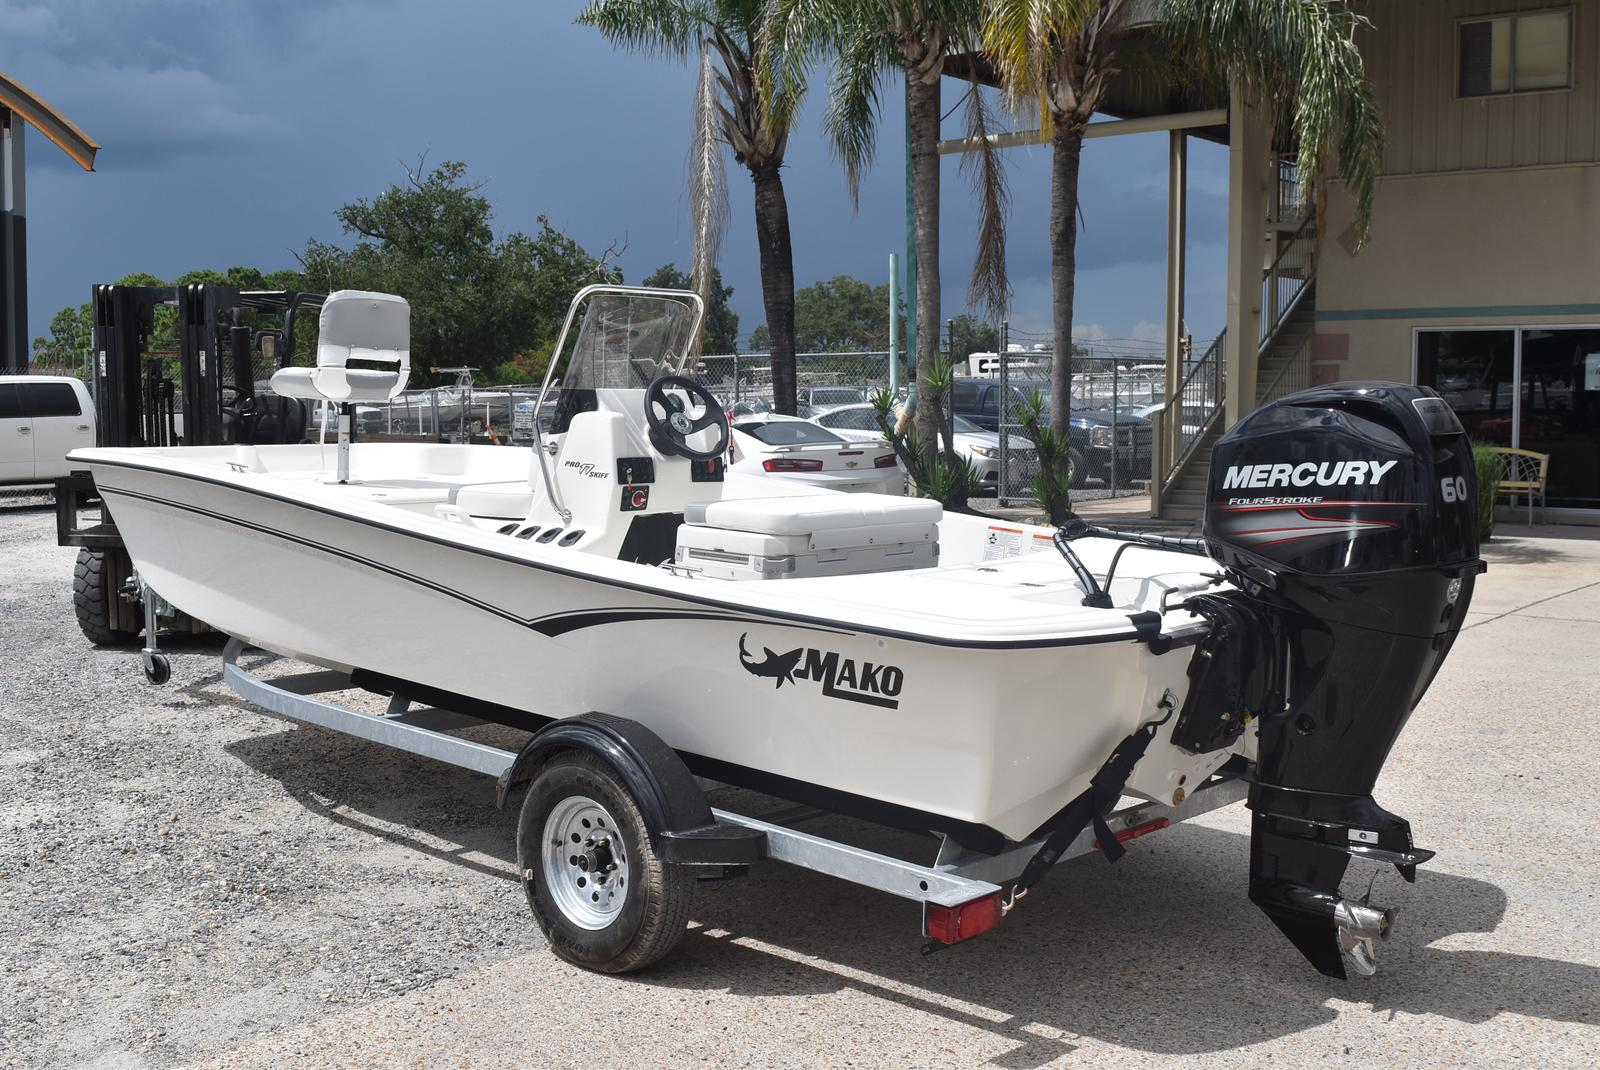 2020 Mako boat for sale, model of the boat is Pro Skiff 17, 75 ELPT & Image # 225 of 702